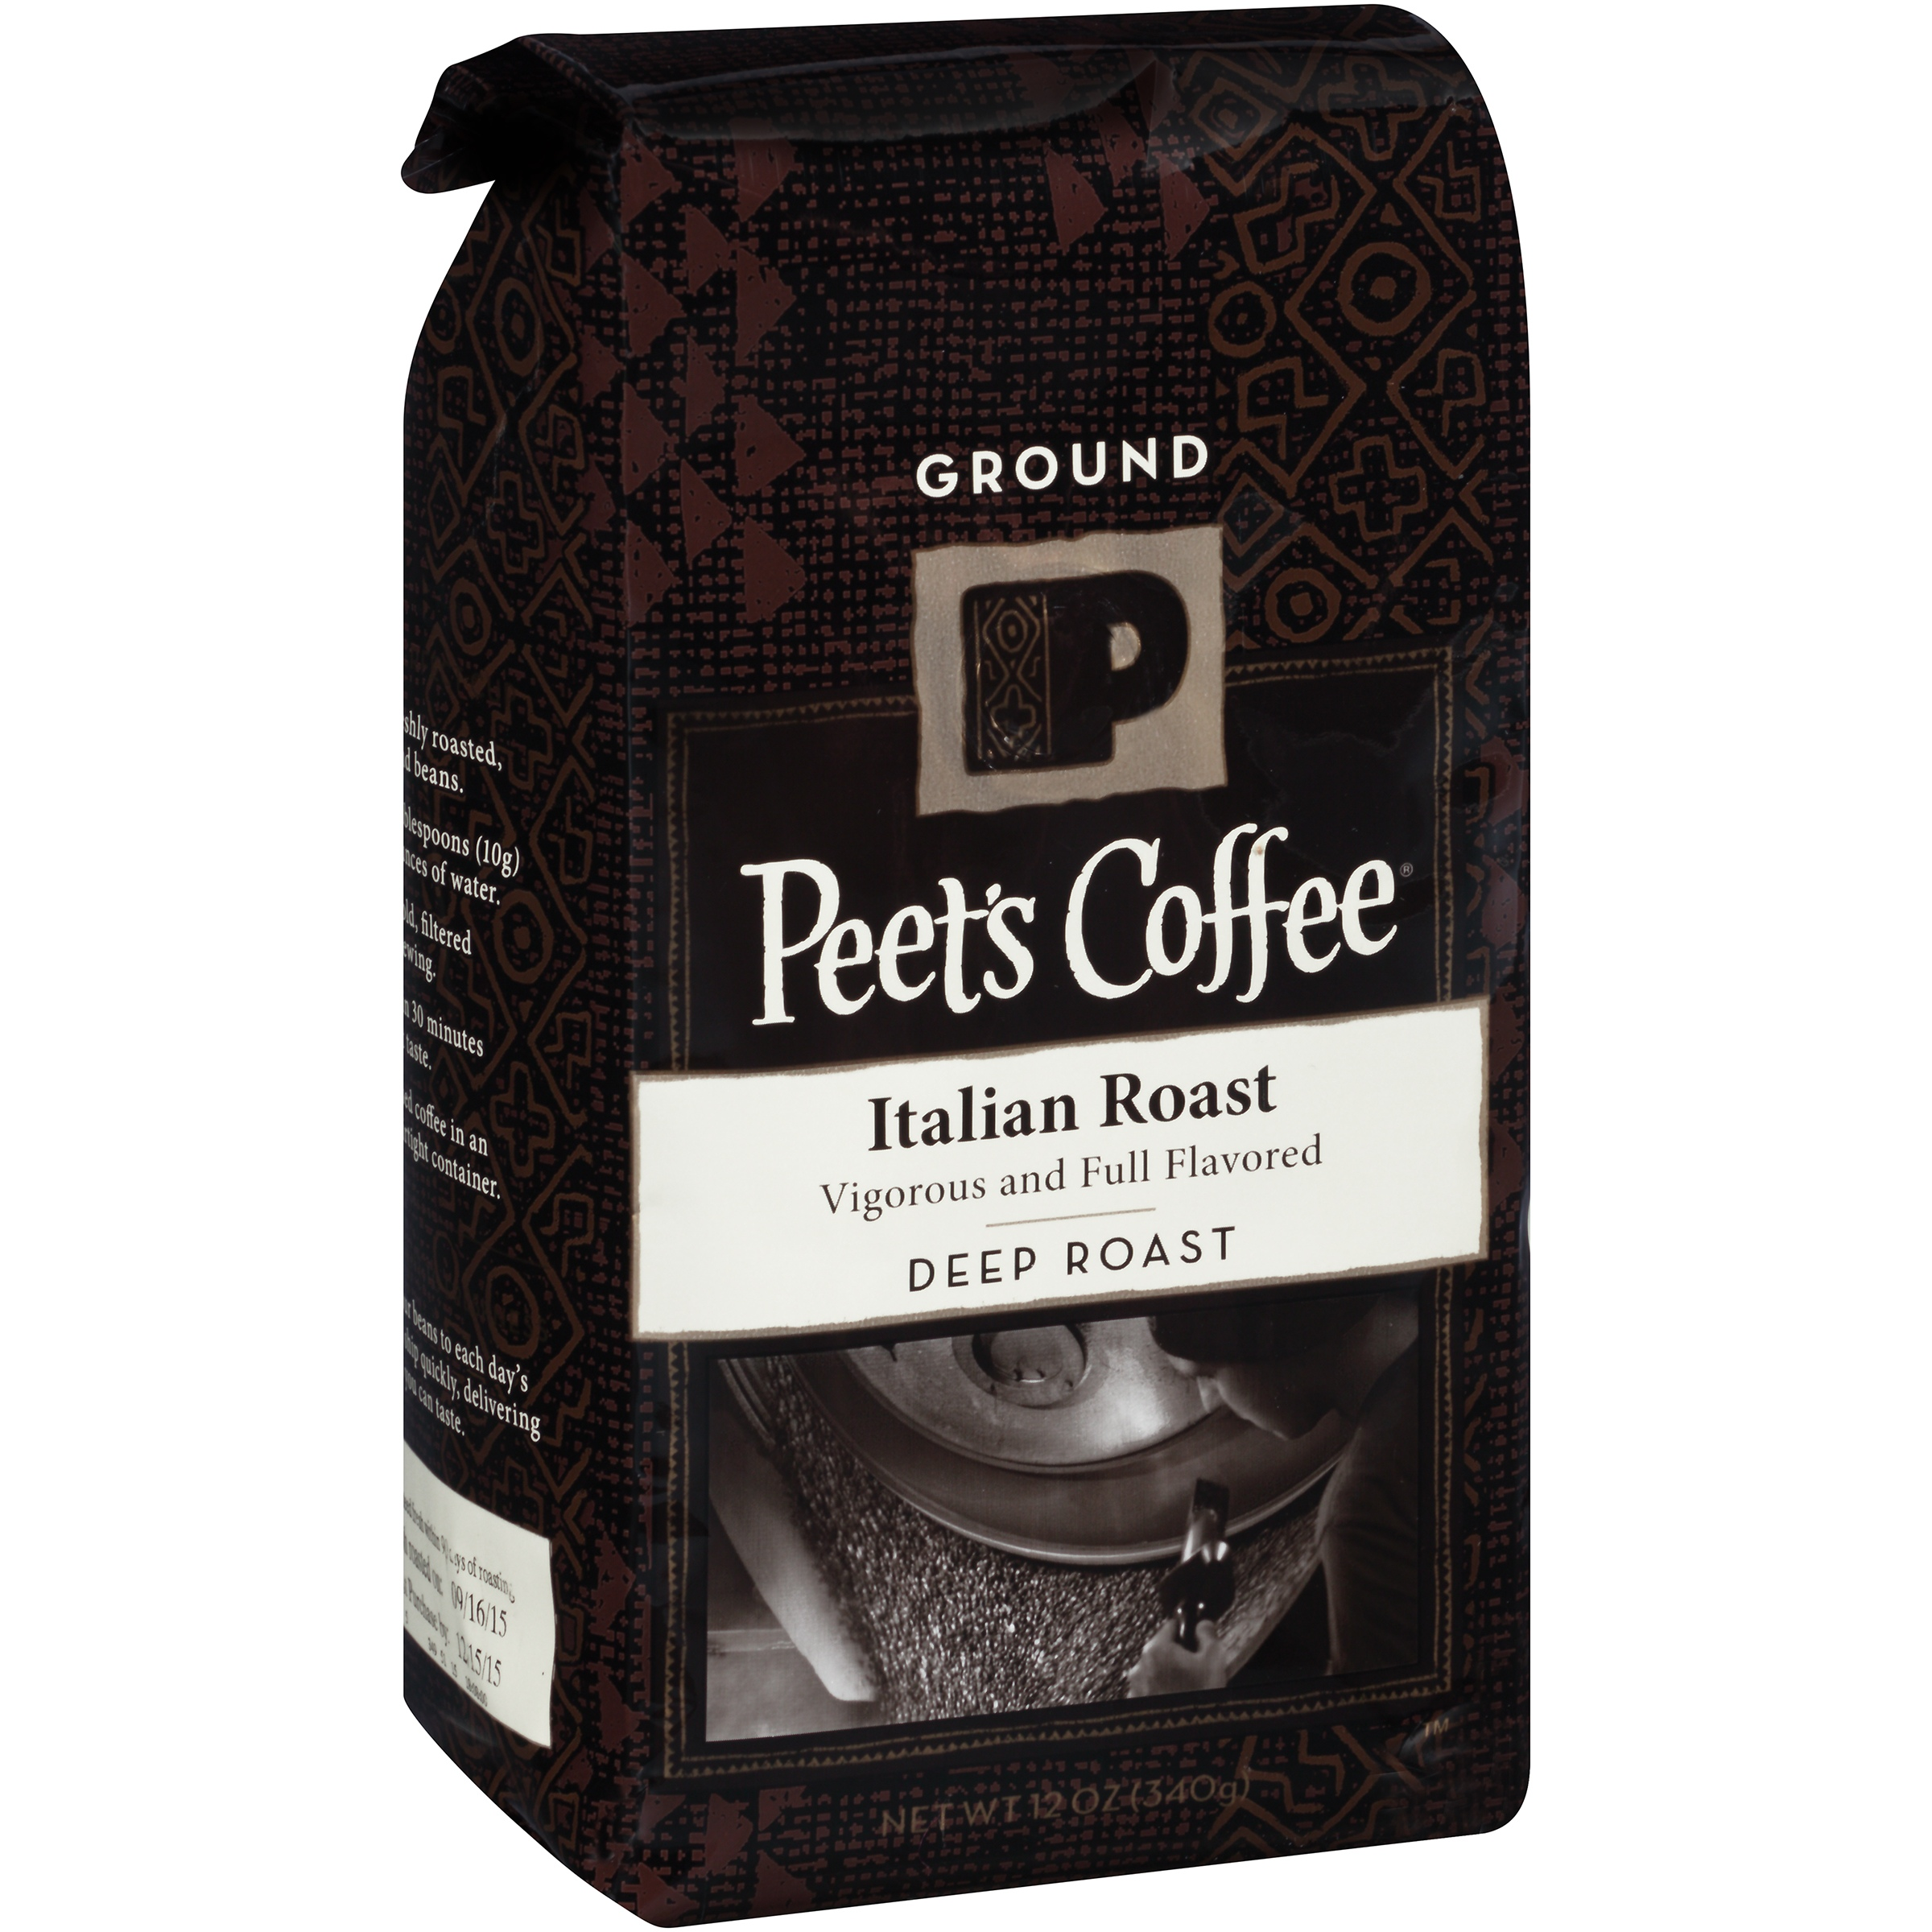 Peet's Coffee Italian Roast Deep Roast Ground Coffee, 12 oz